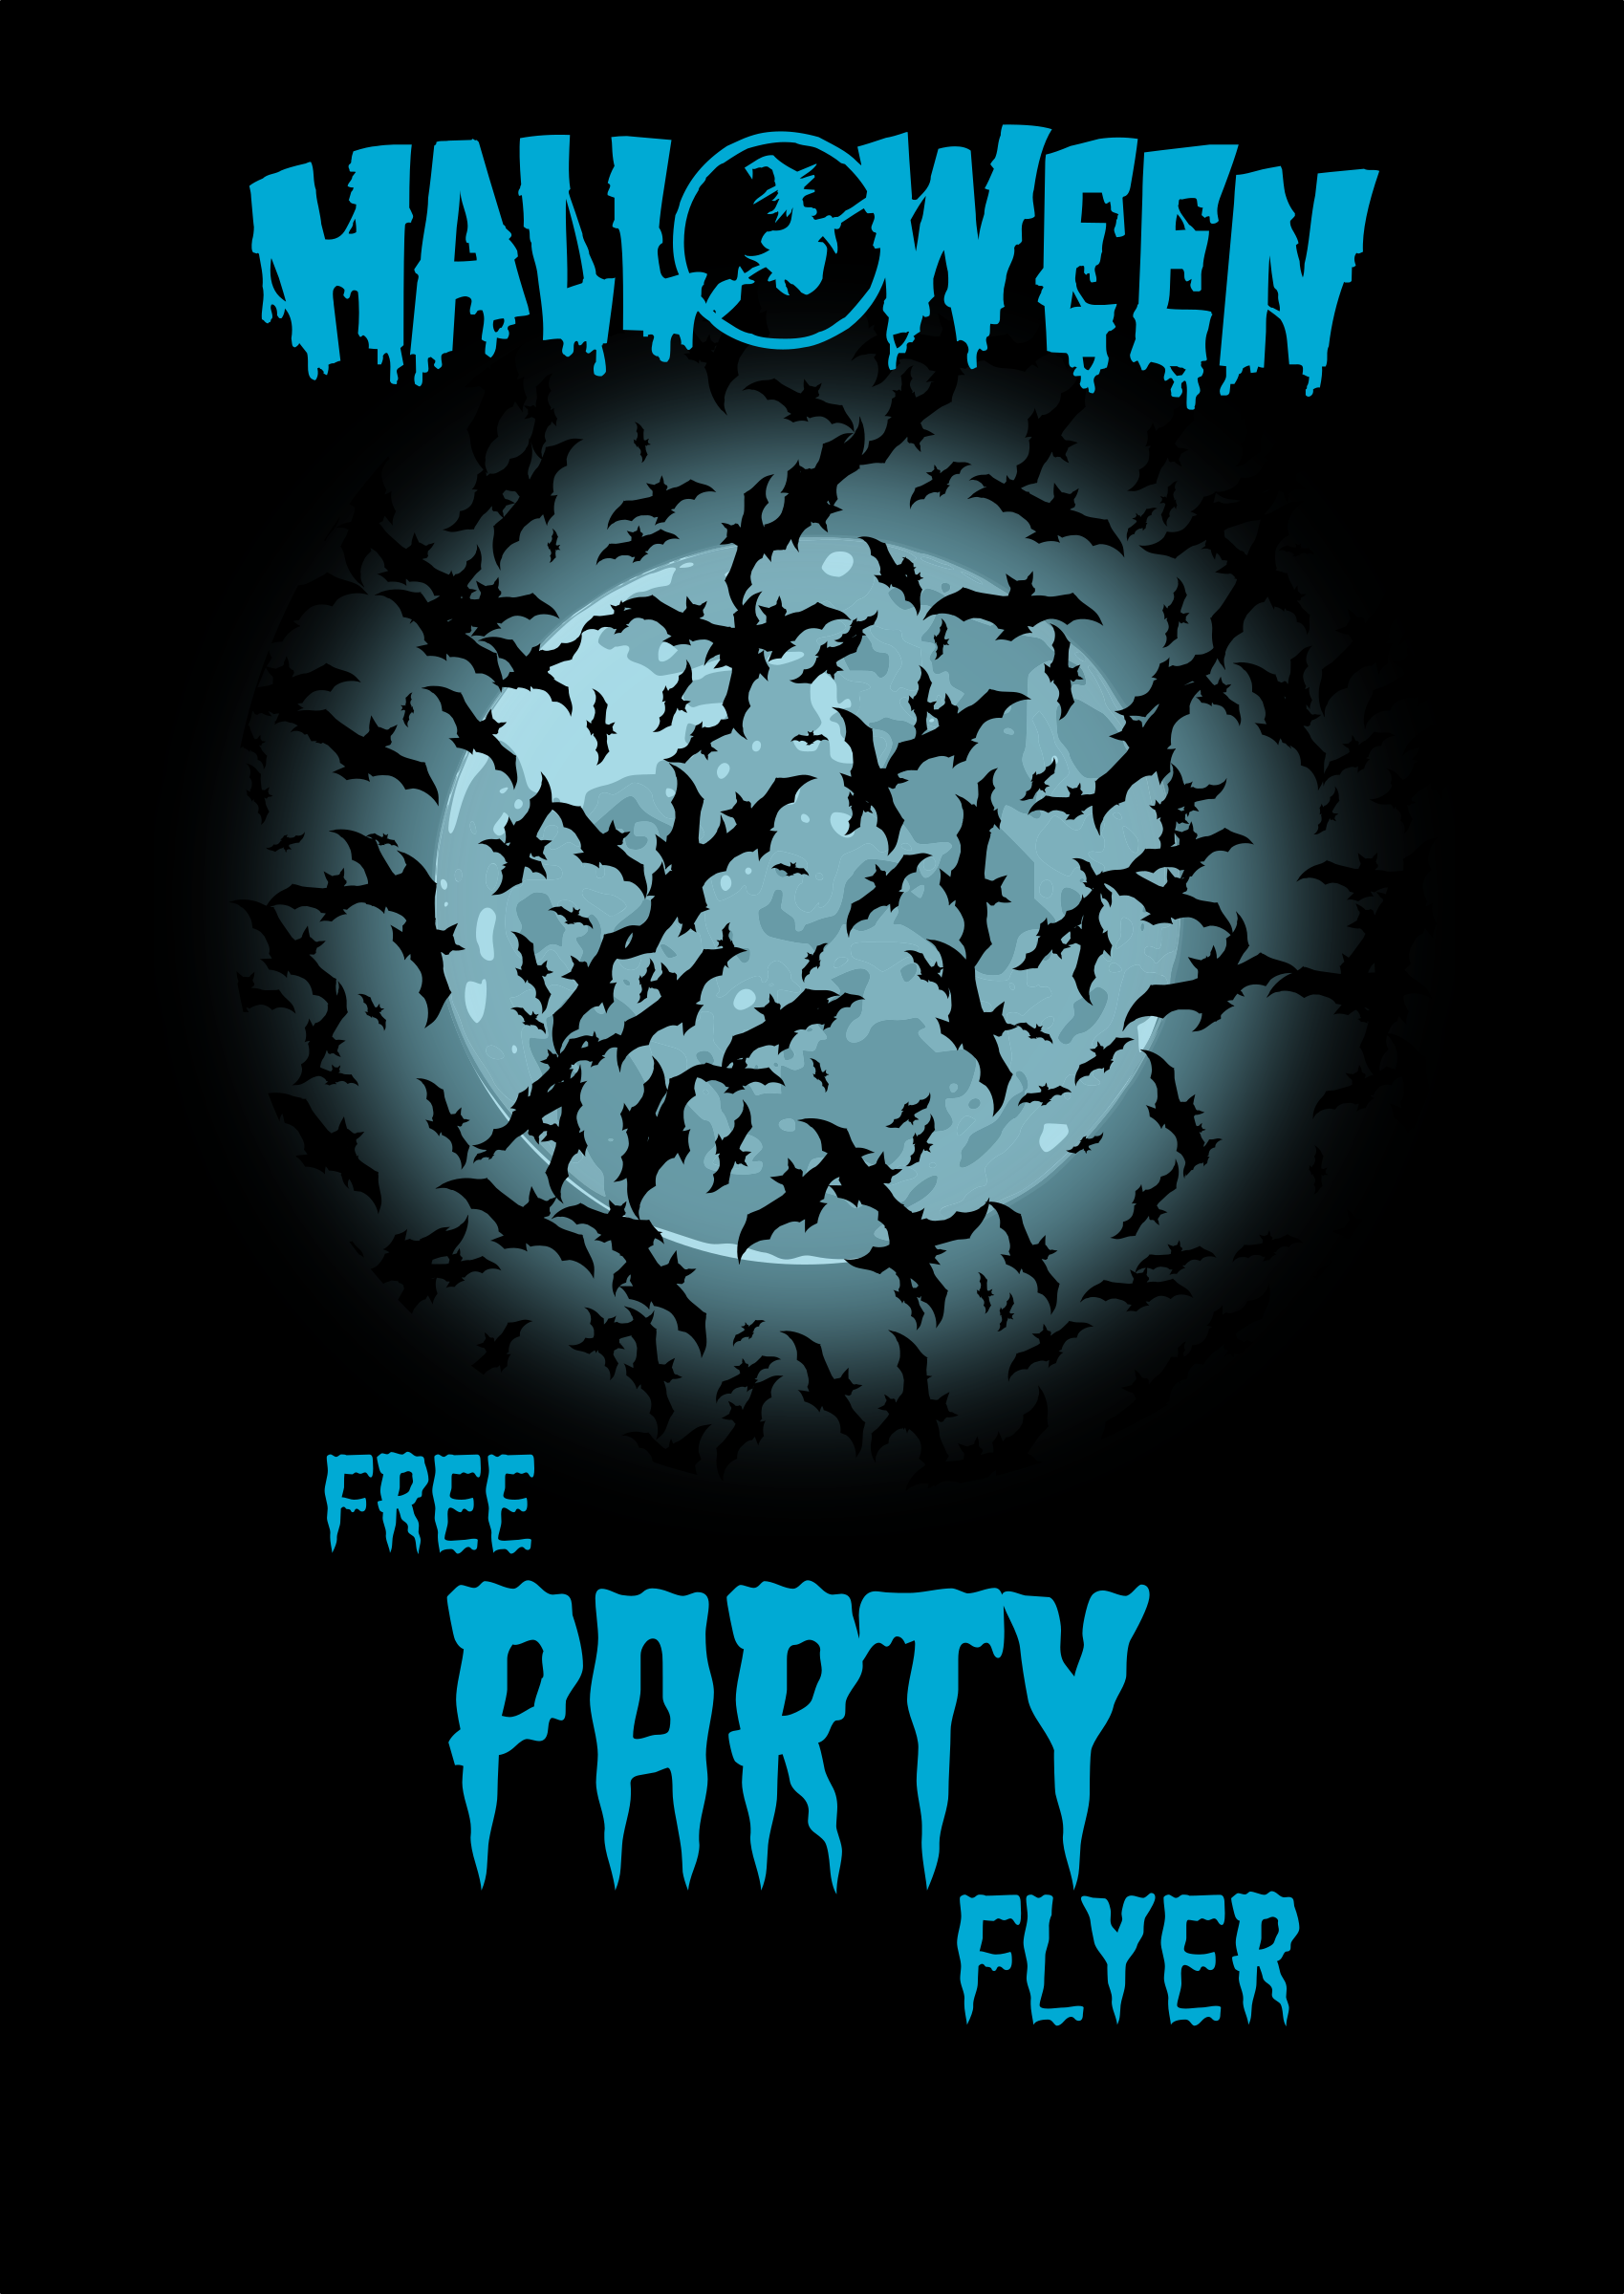 Halloweenn Party Flyer2 by Chrisdesign